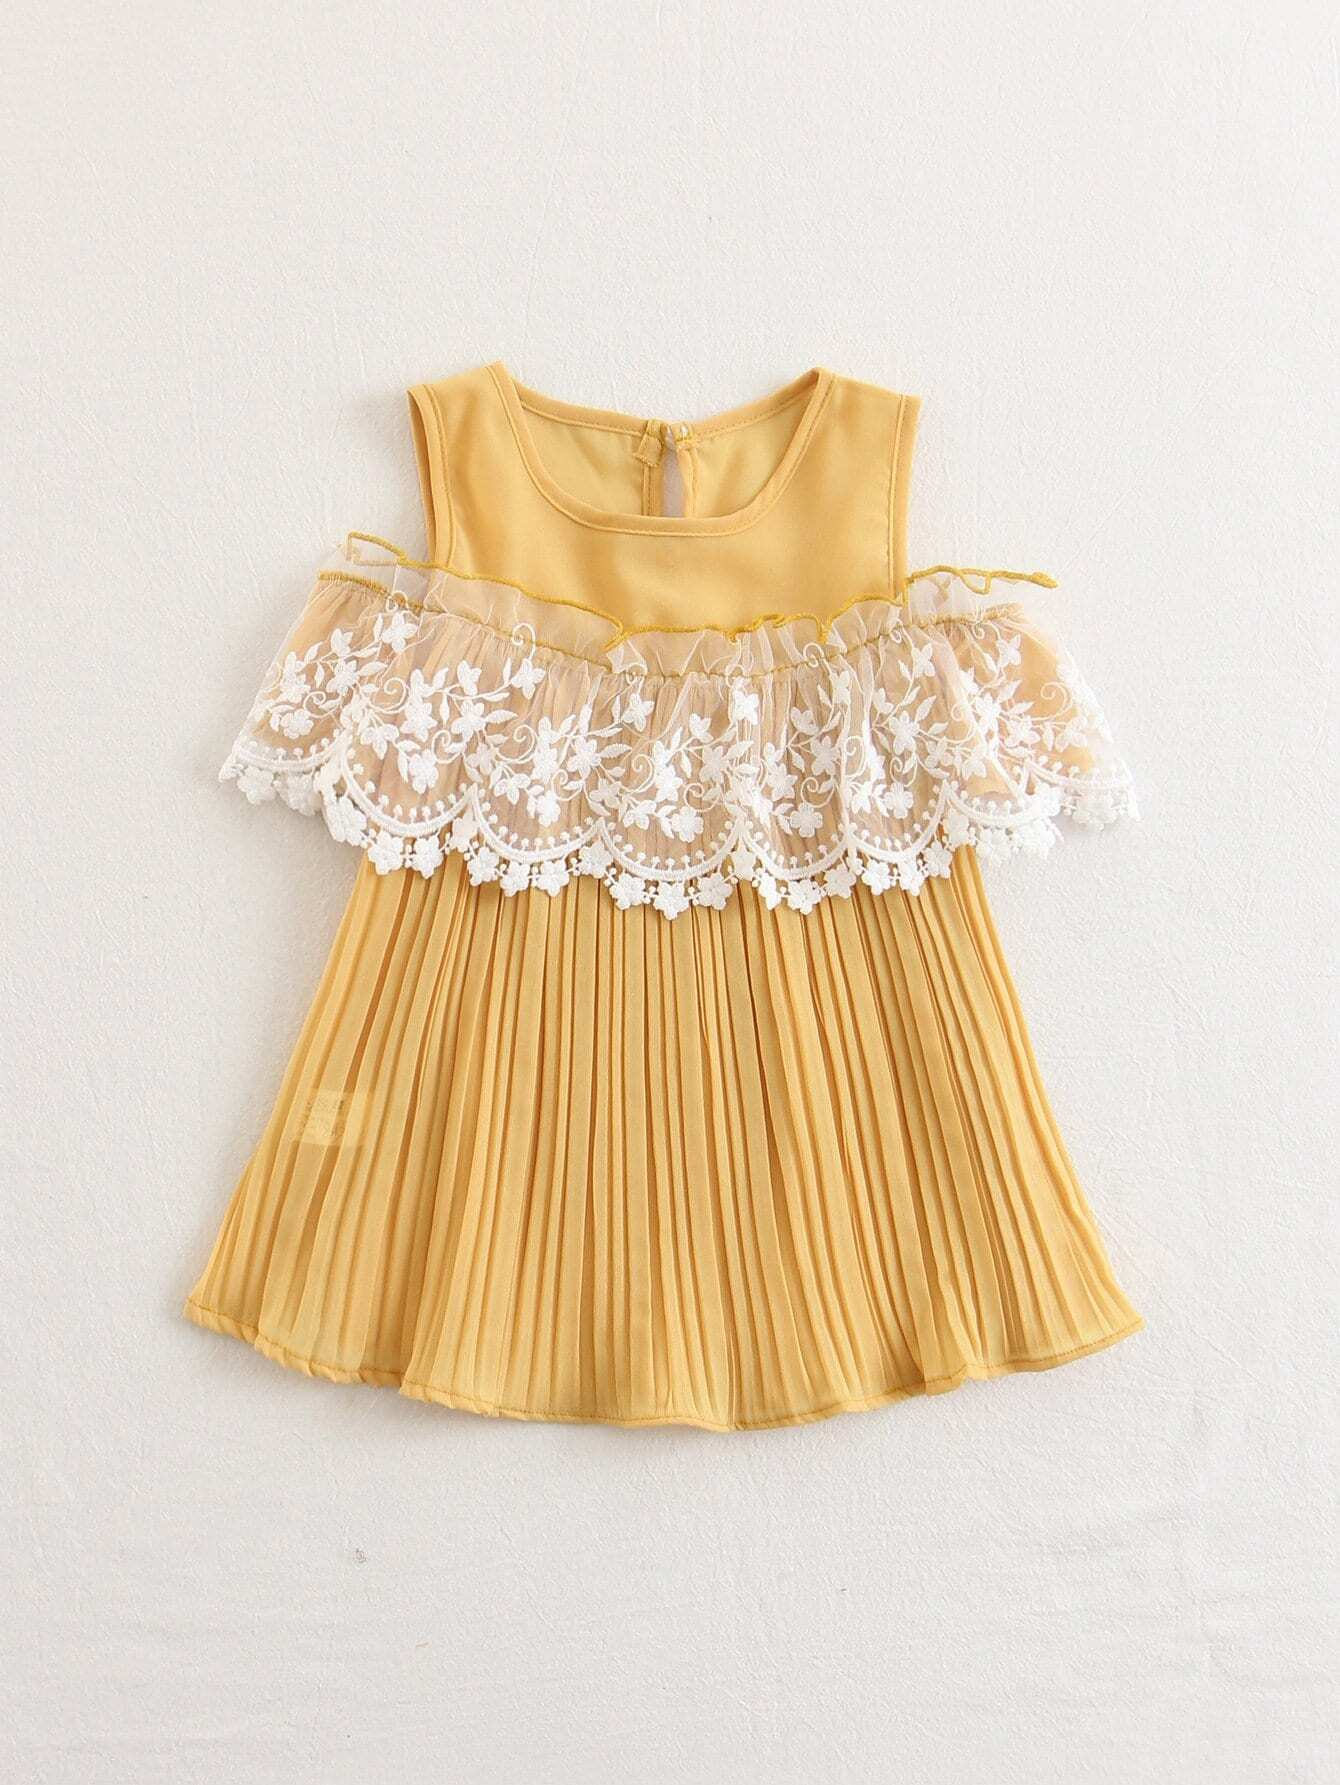 Kids Contrast Lace Pleated Dress contrast collar lace applique pleated pinstripe dress